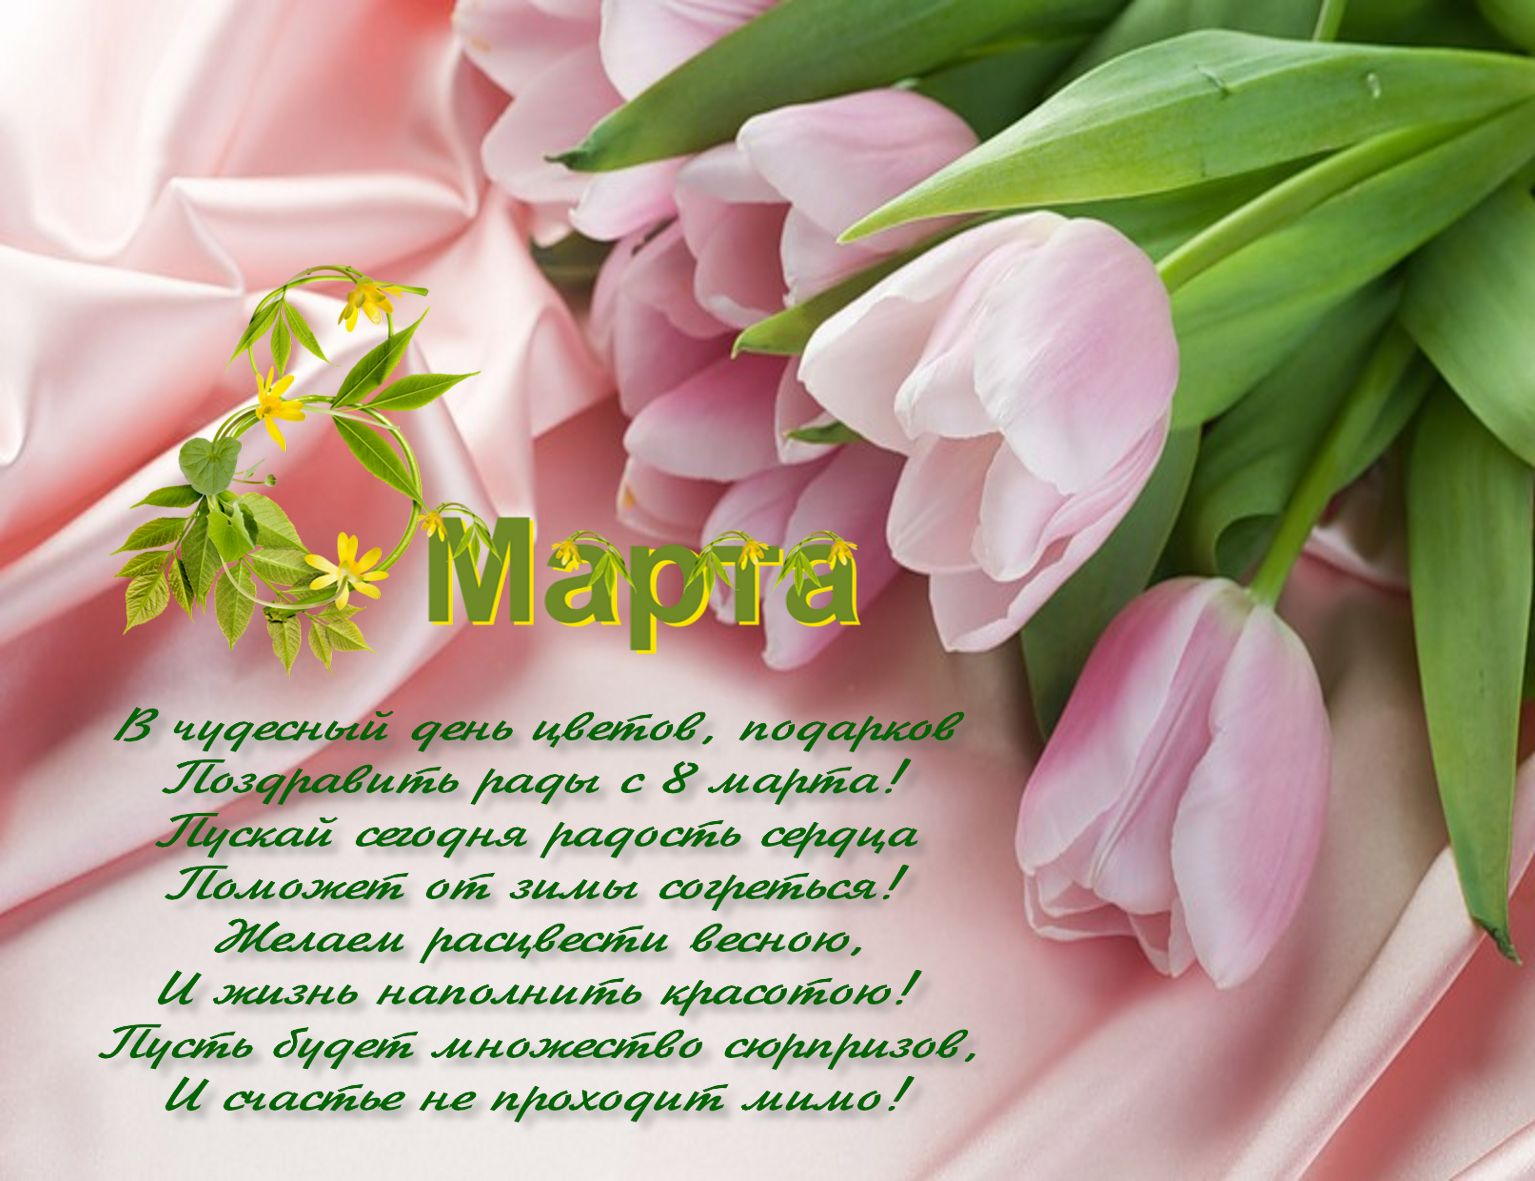 http://umniki.grodno.by/uploads/posts/2014-03/1394460719_1.jpg